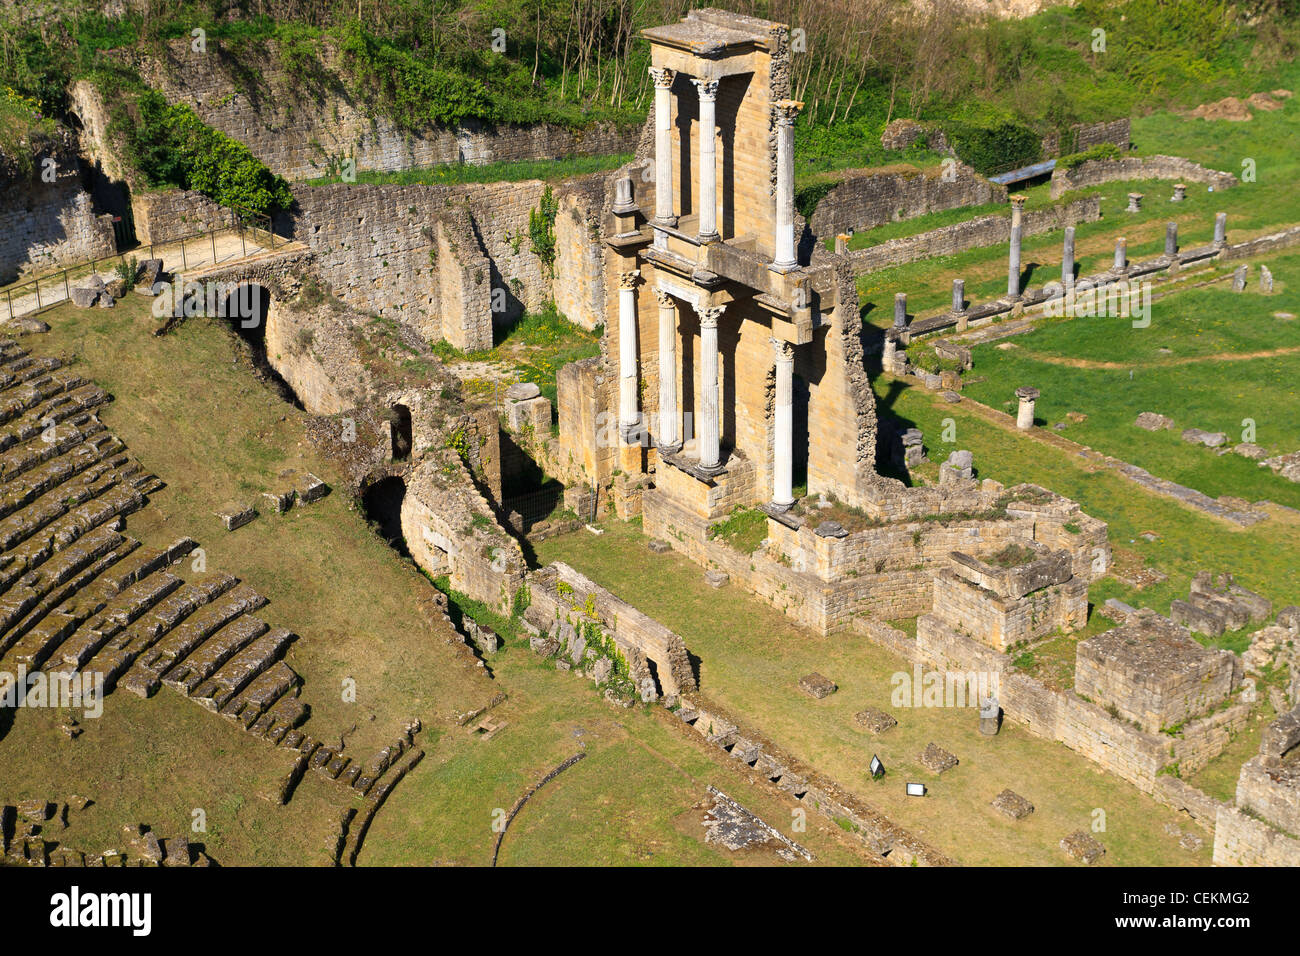 Remains of Roman Amphitheatre in Volterra, Tuscany, Italy - Stock Image